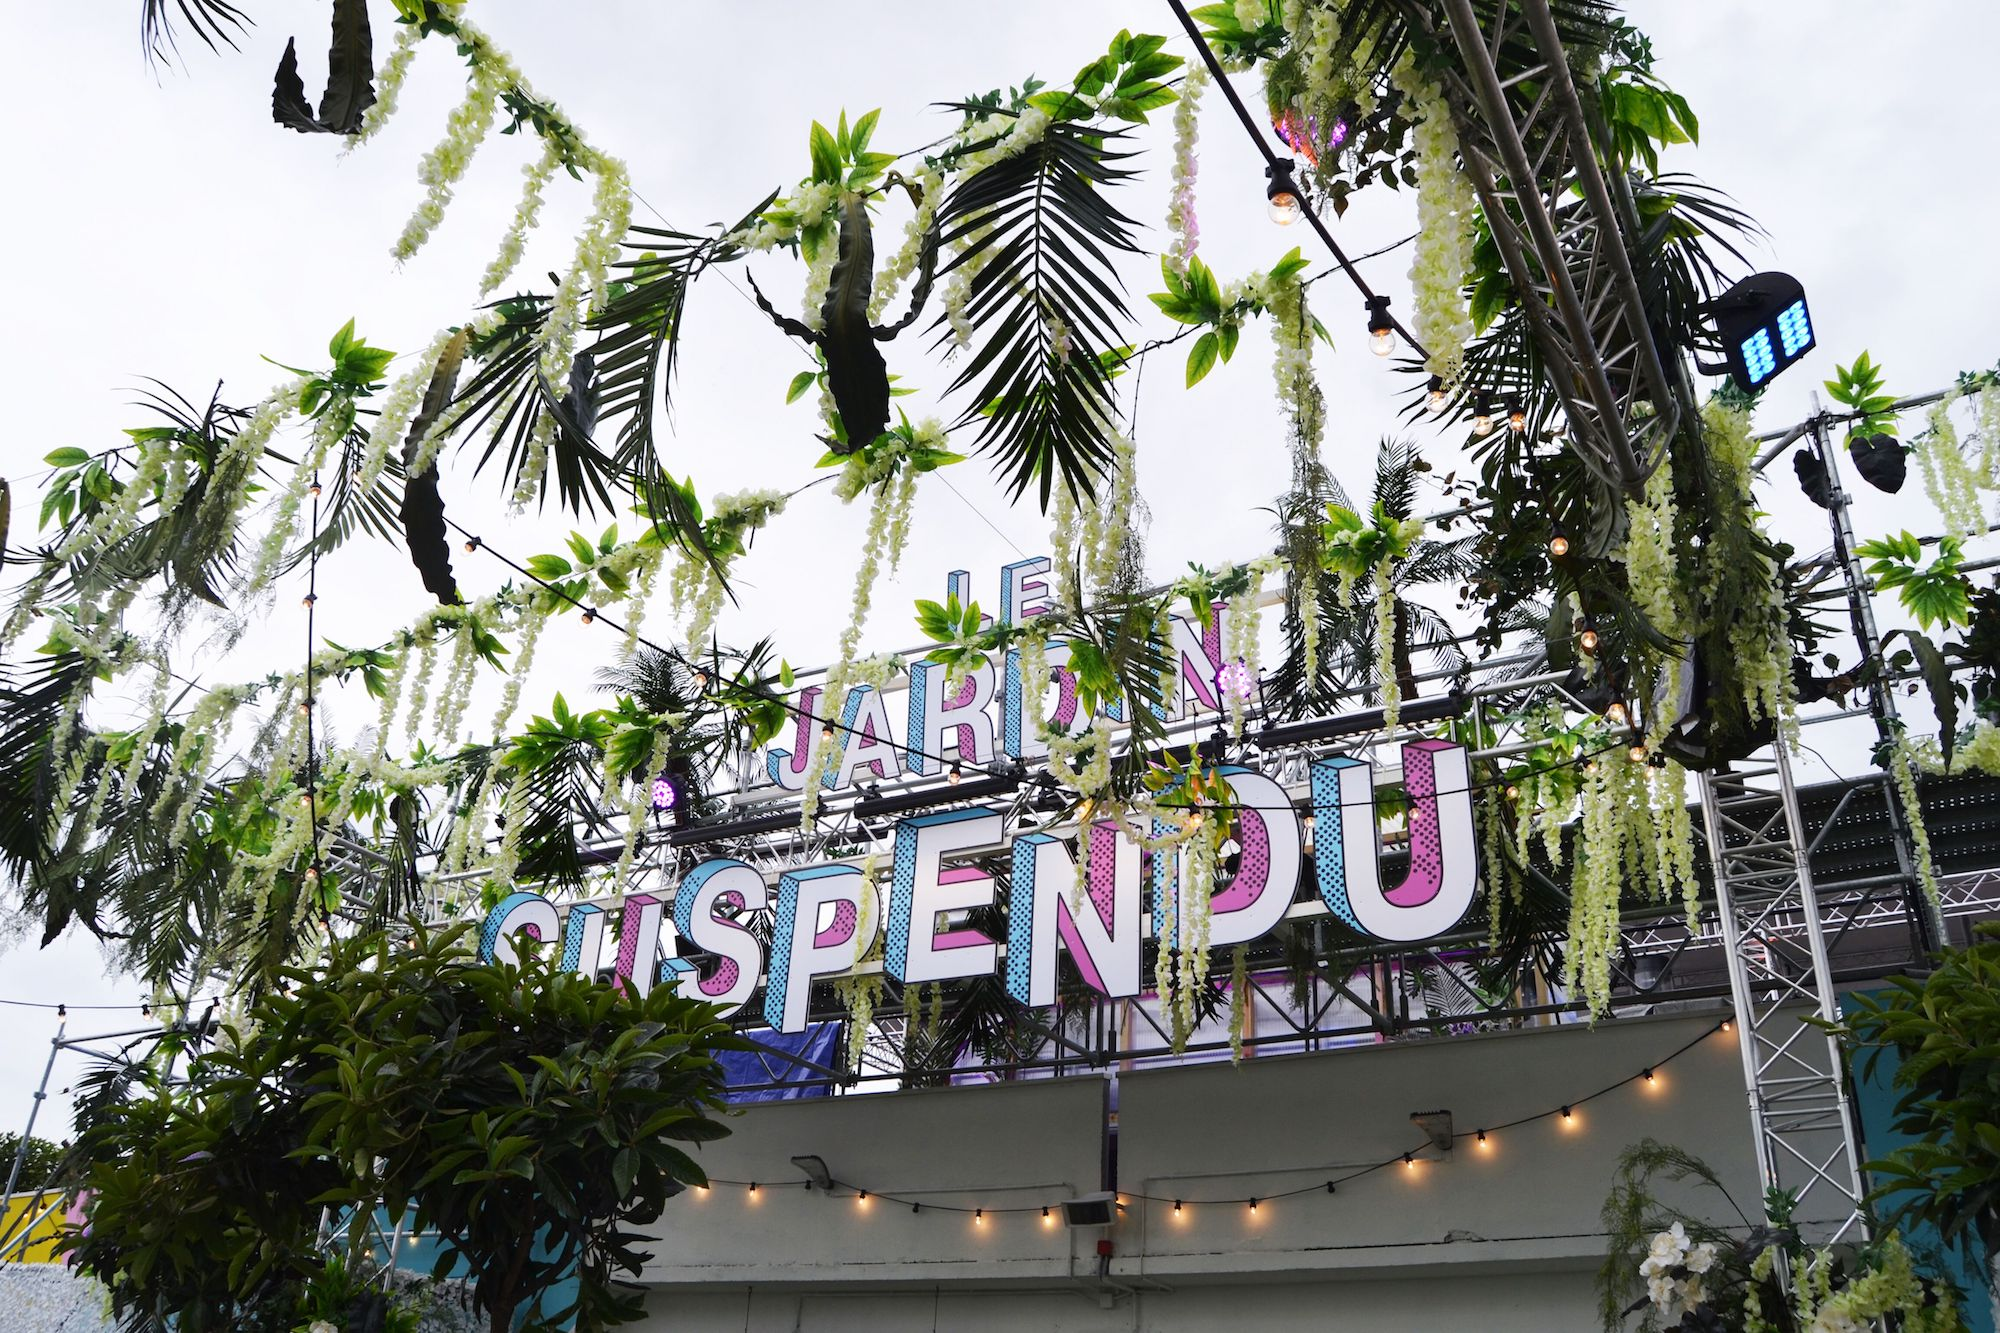 Paris rooftop bar Le Jardin Suspendu (the hanging garden) name adorned with leafy decor.